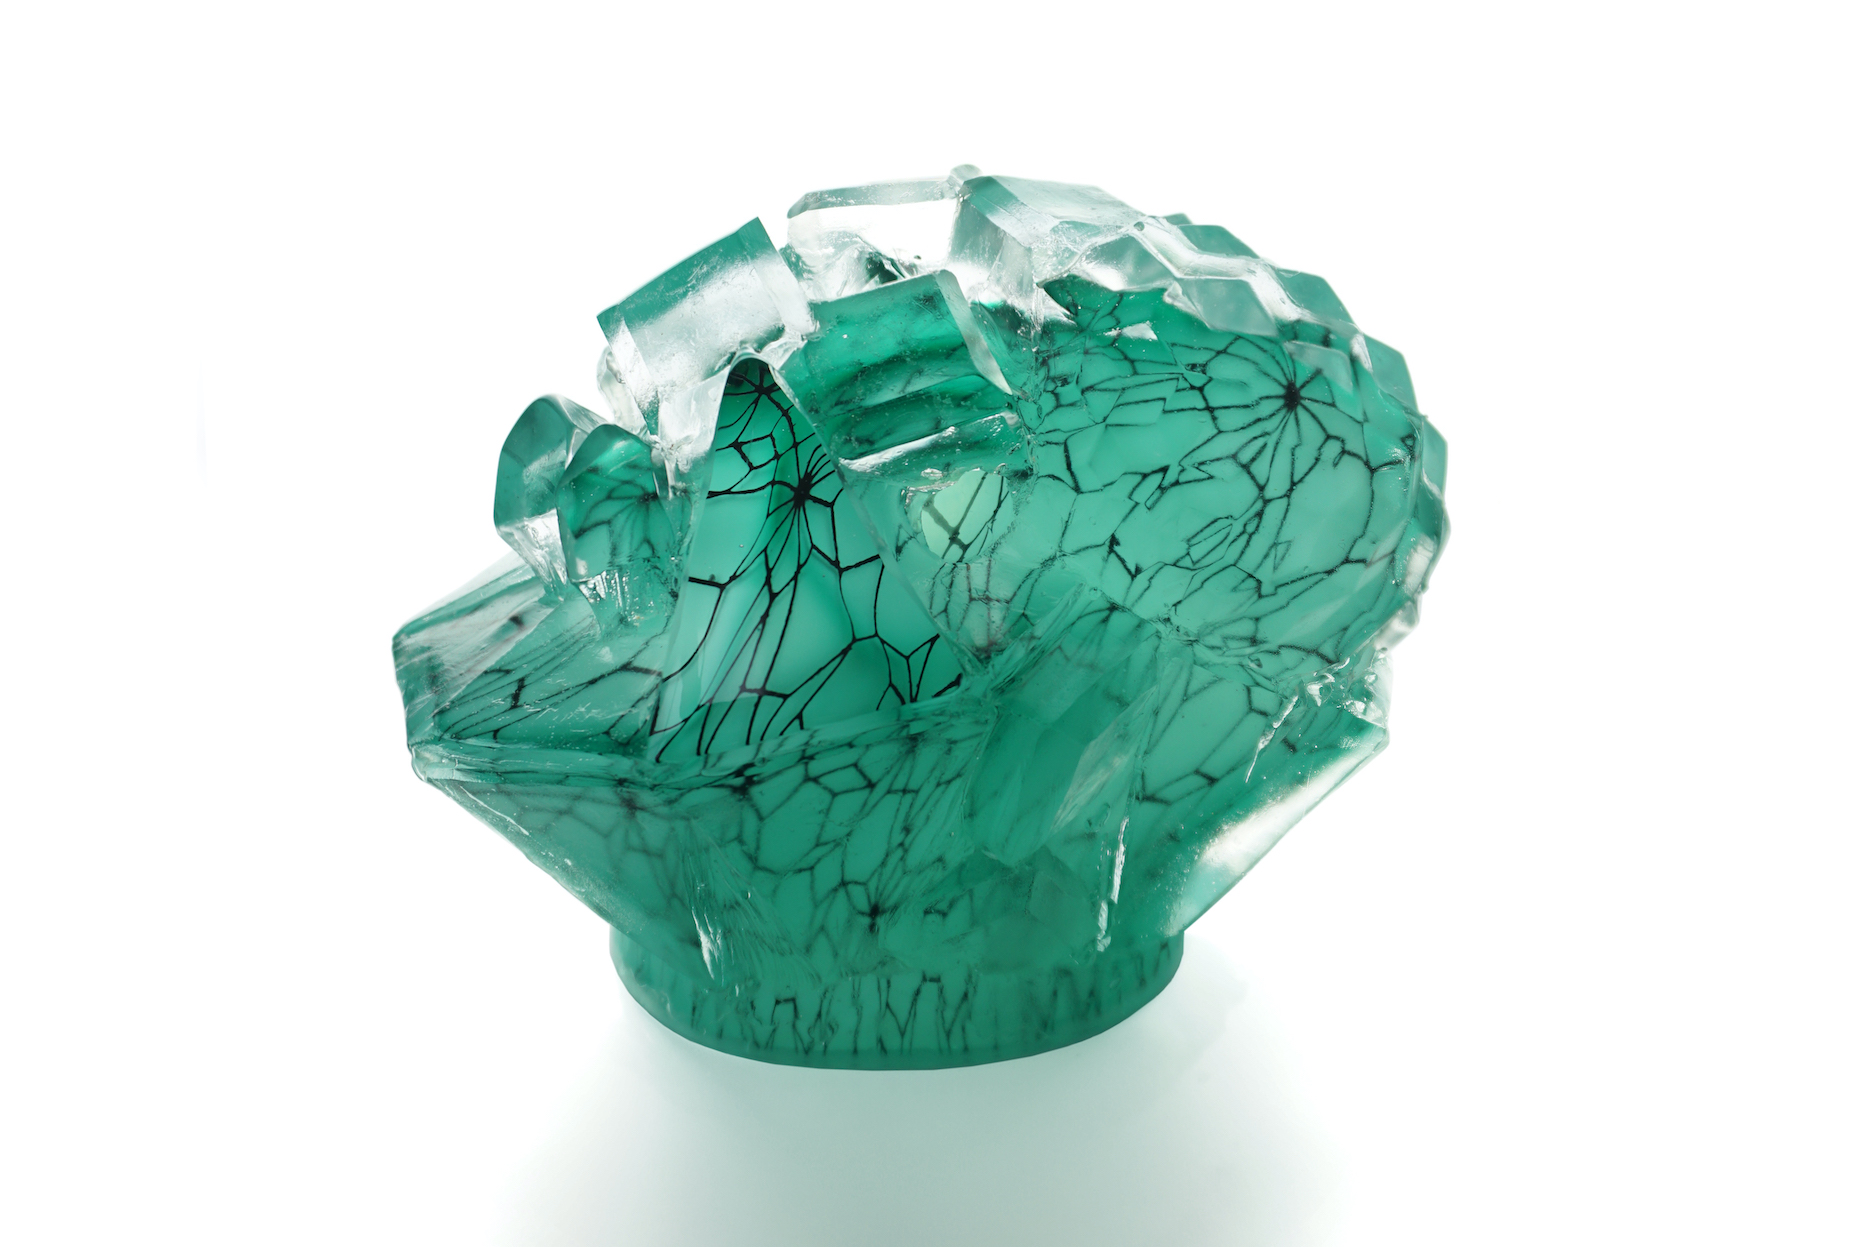 Architectural Glass Fantasies - Object no. 40